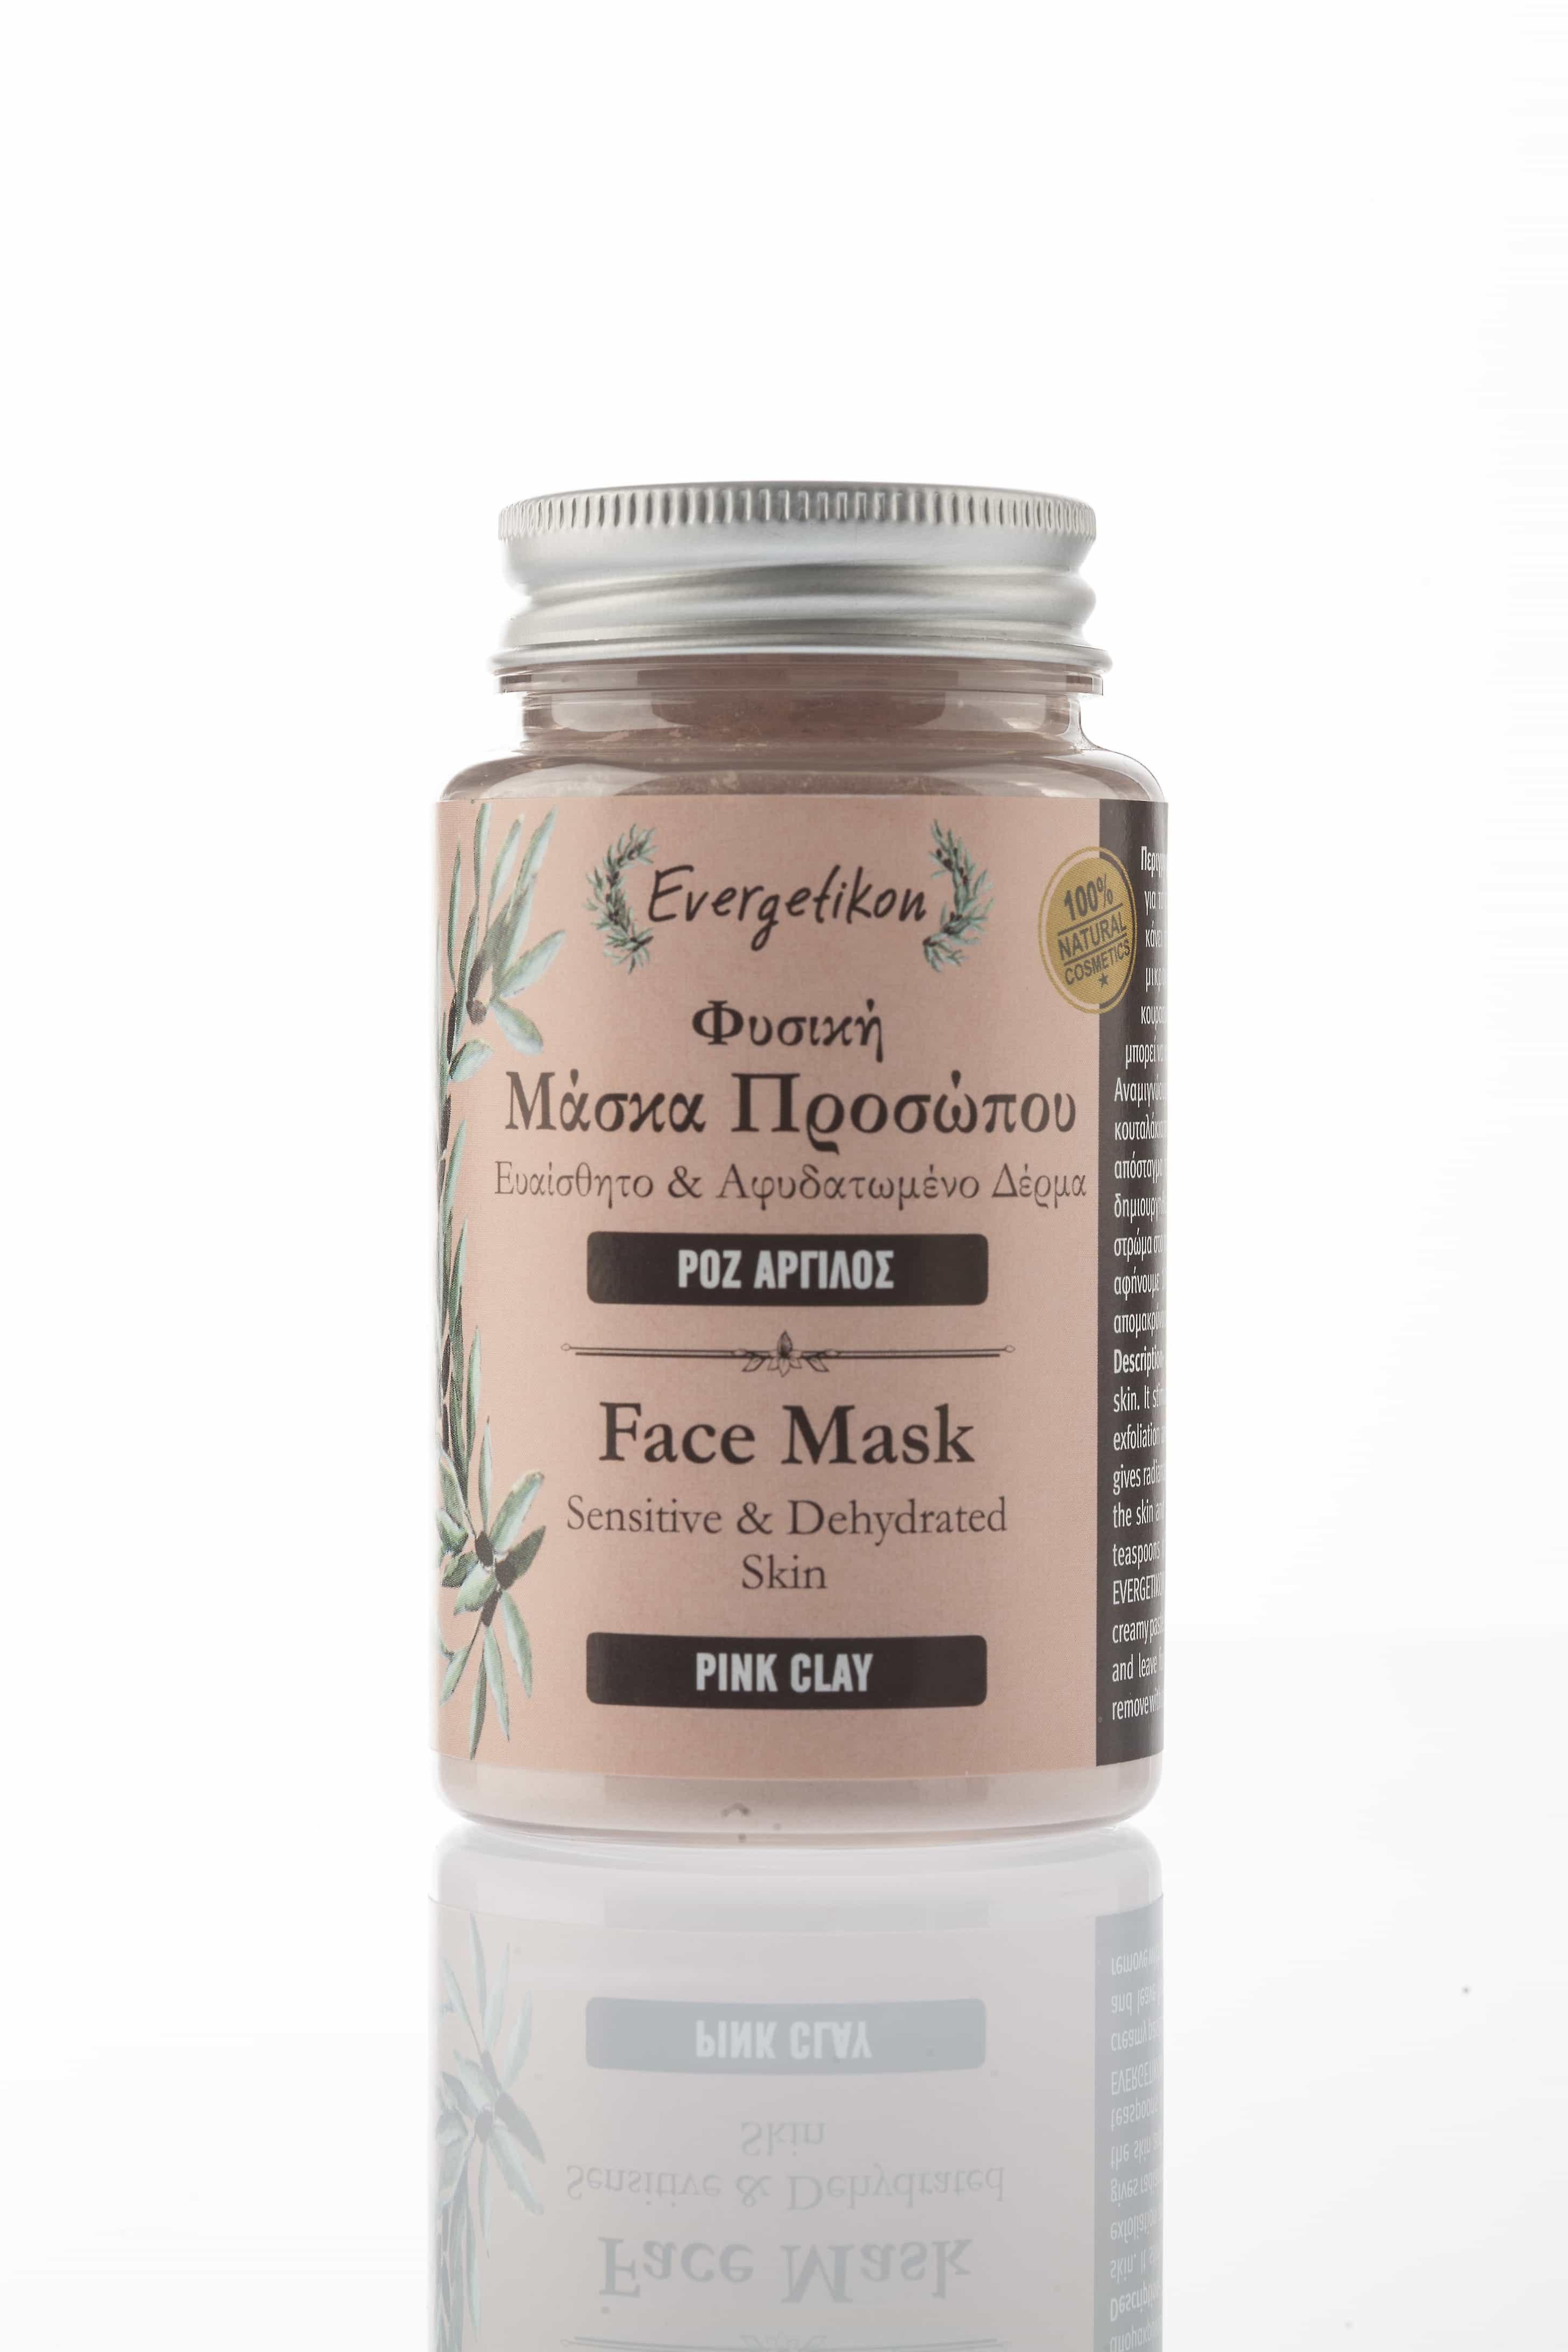 Face mask Pink clay for a sensitive and dehydrated skin.